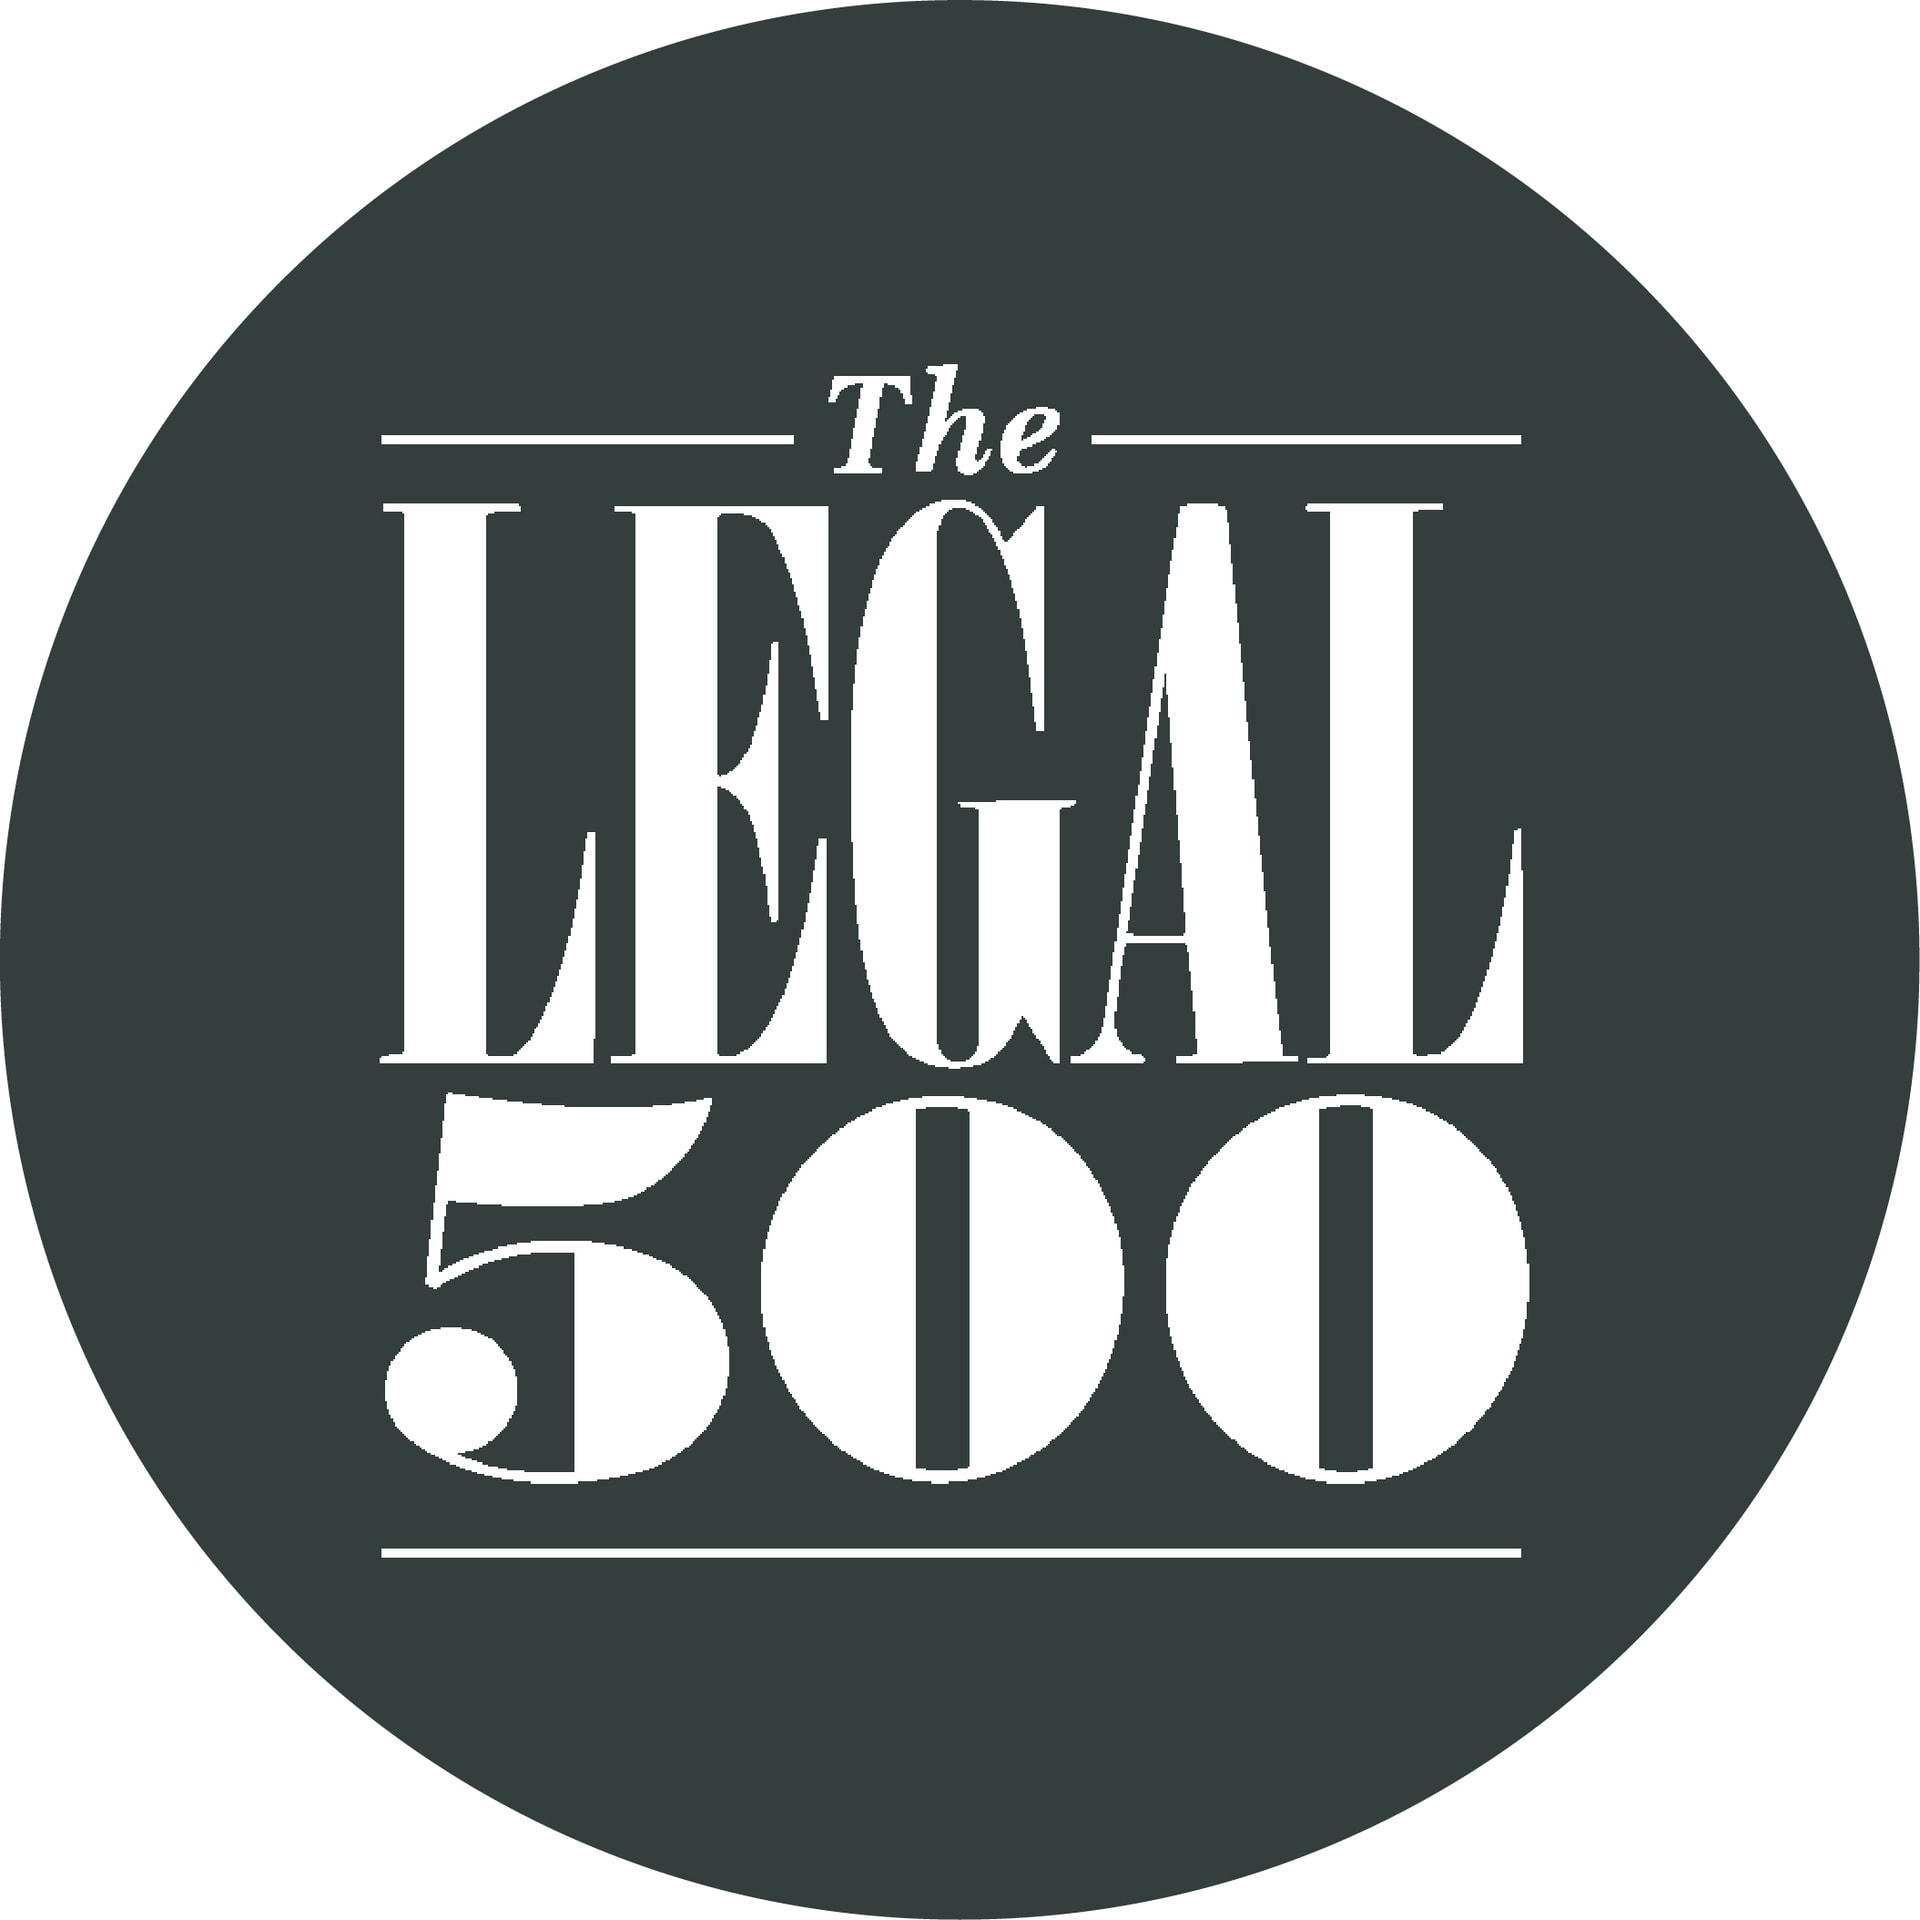 The Legal 500: Europe, Middle East & Africa, 2016